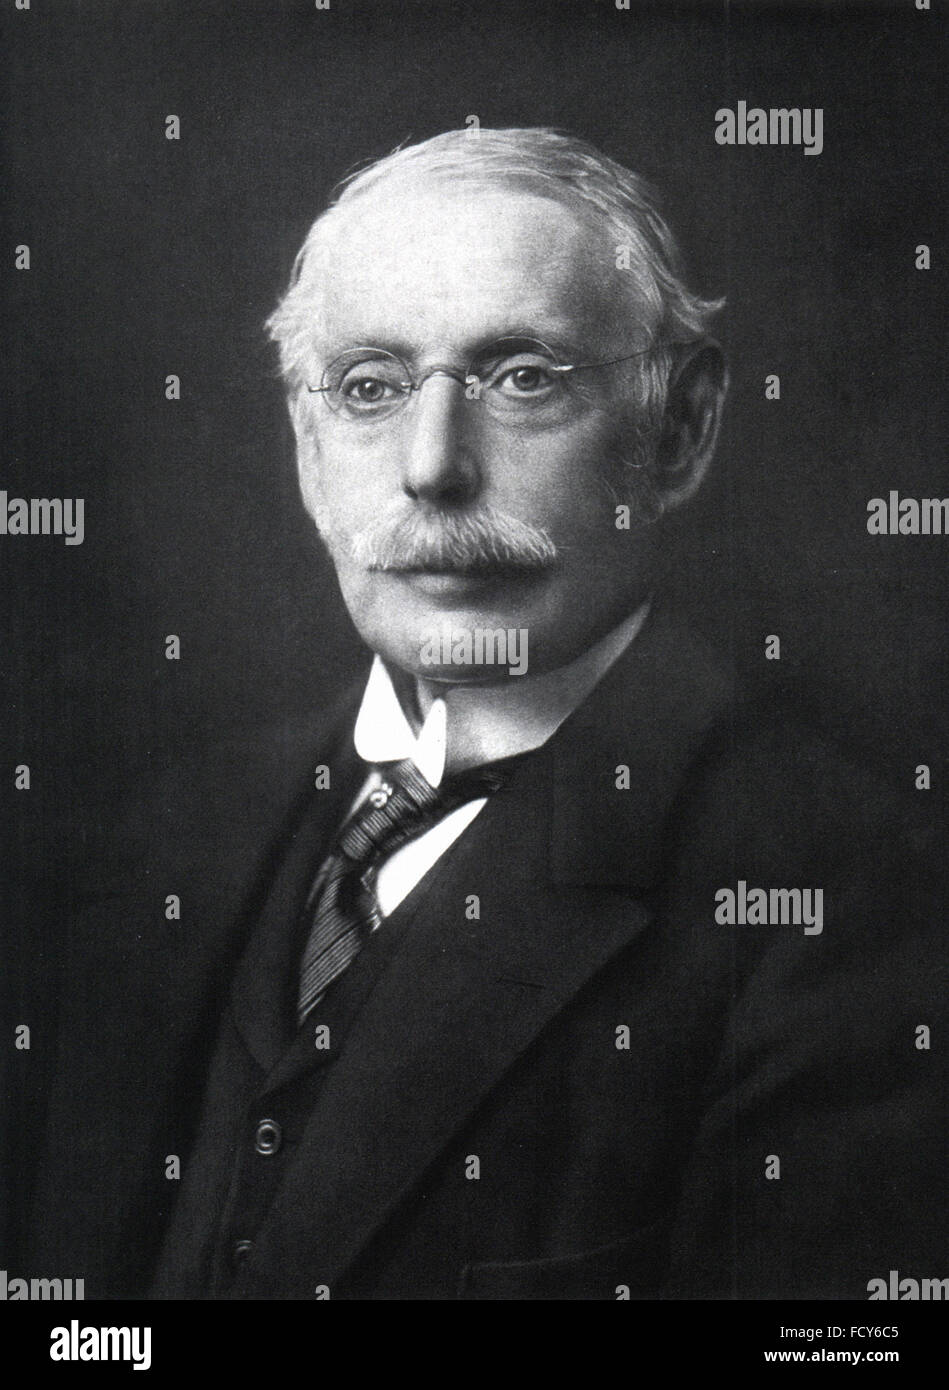 portrait of charles parsons 1854 1931 engineer - Stock Image